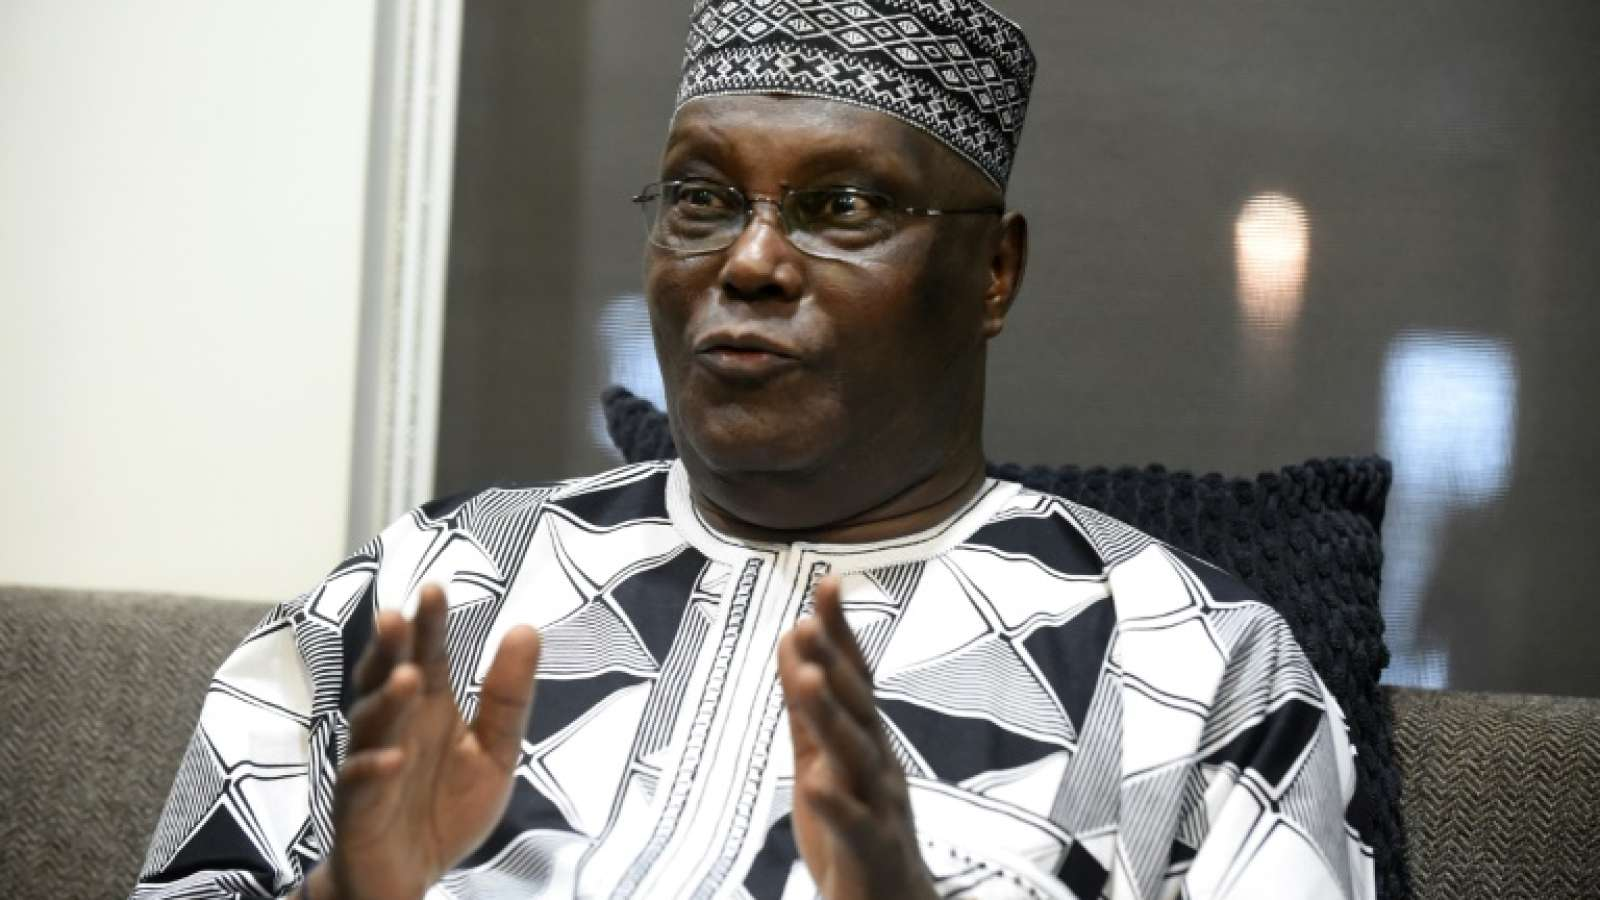 Zamfara abduction: Empower State to control Internal security – Atiku tells Buhari